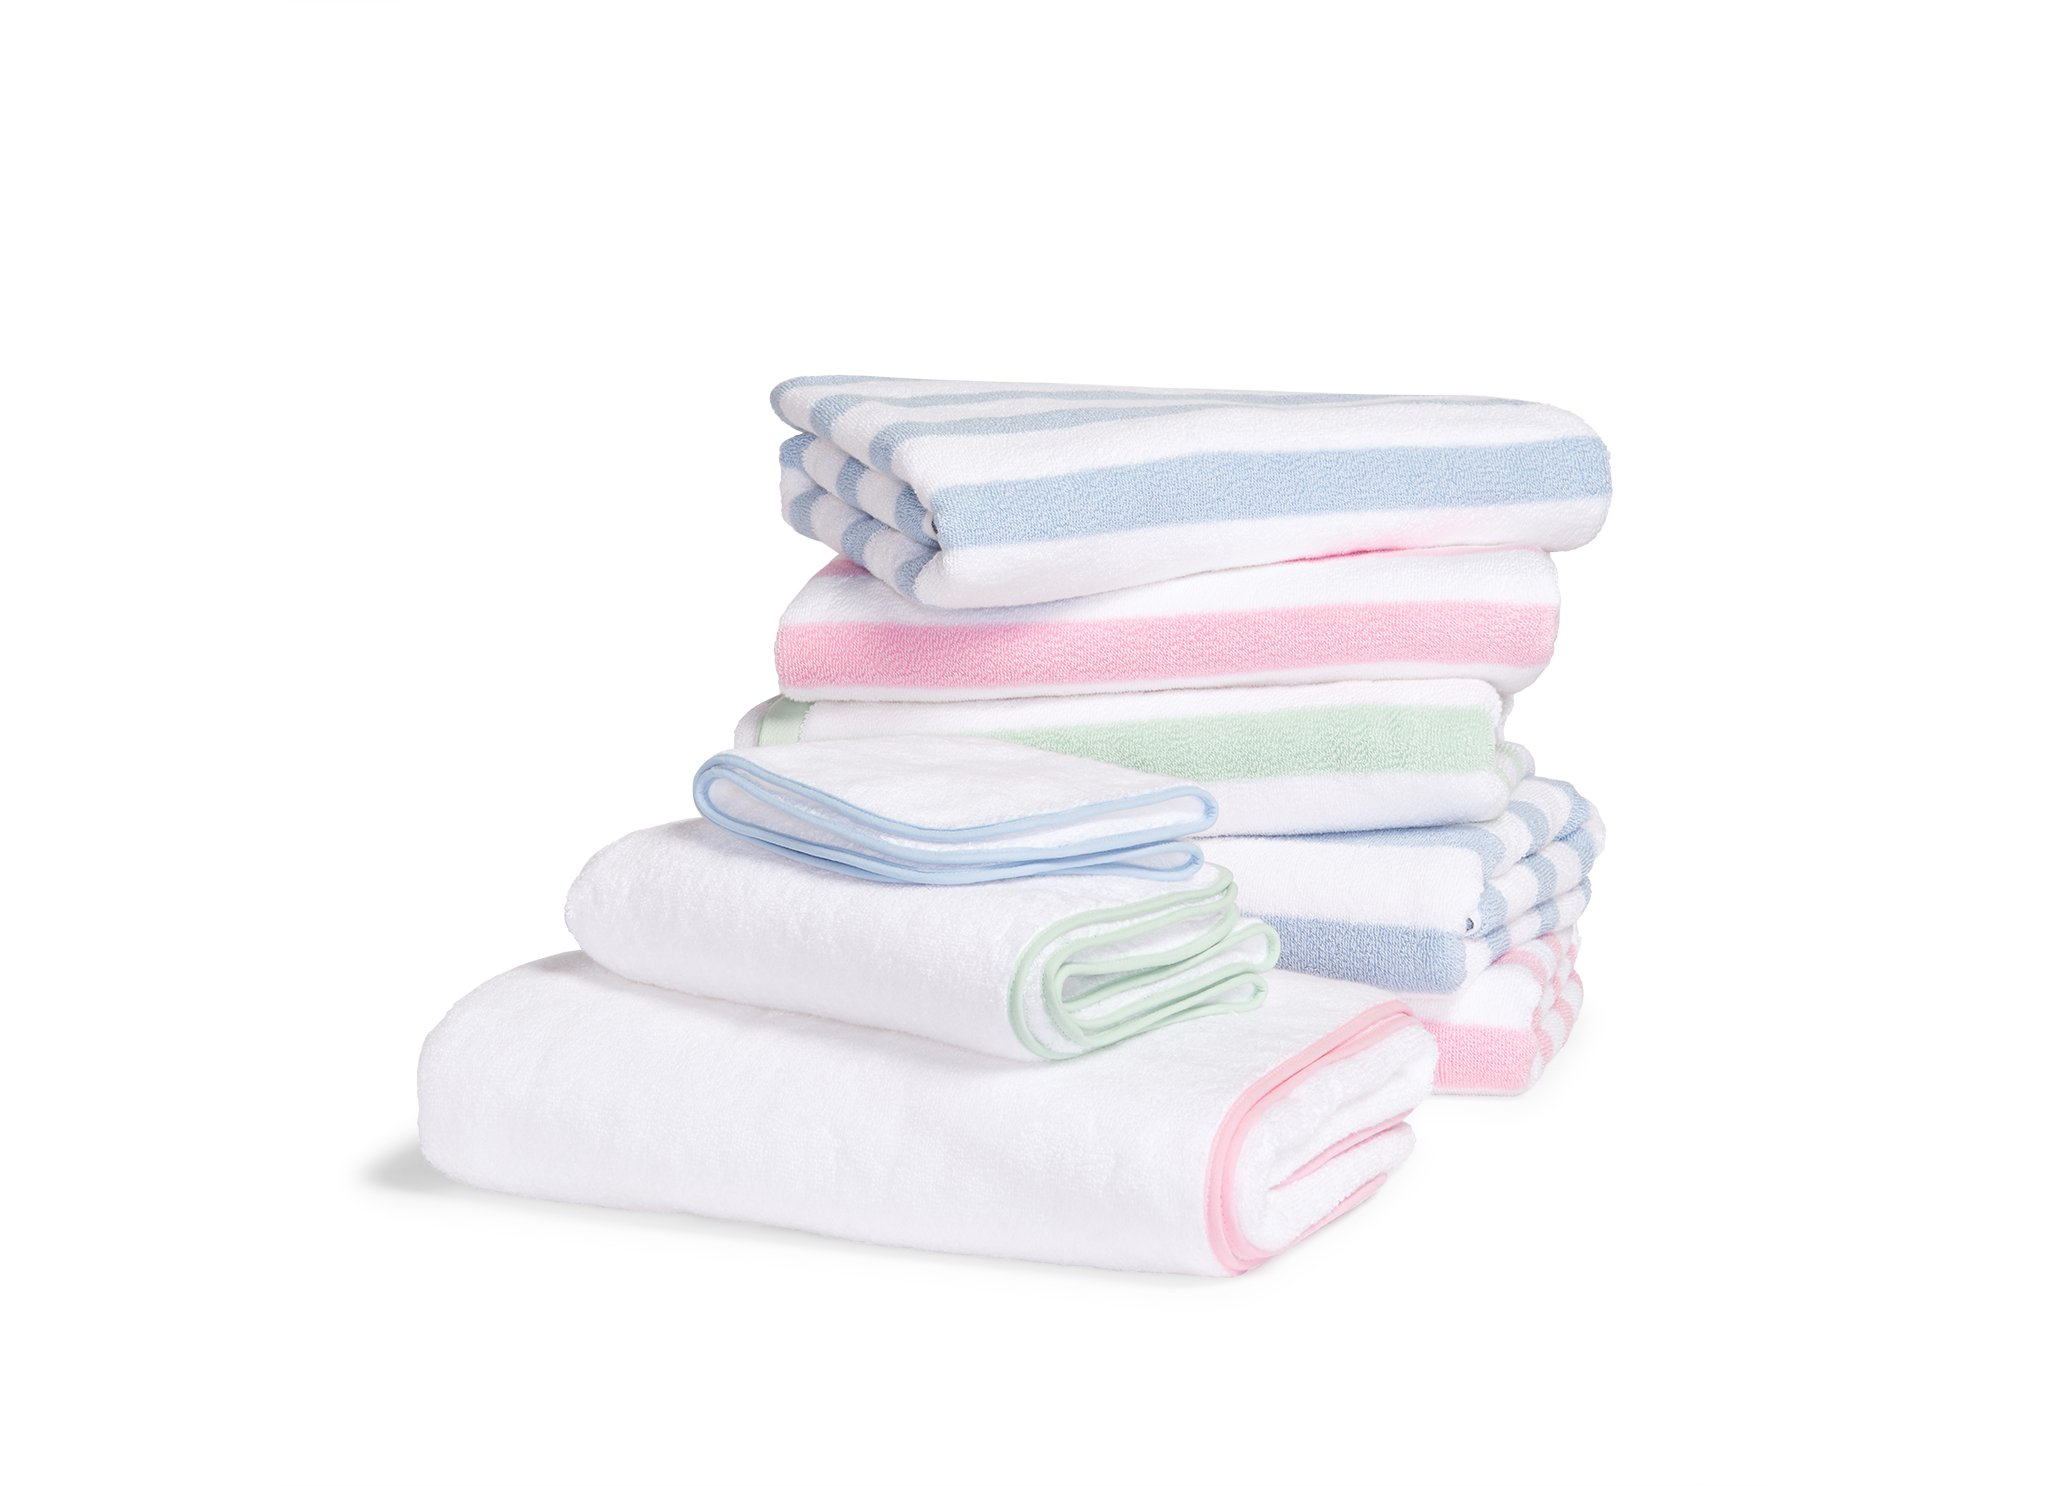 1079_FIVE_BATH_STACK_STRIPED_AND_WASH_A_0076_55b48d30-4c20-45b4-92ef-96cd99291820_2048x2048.jpg